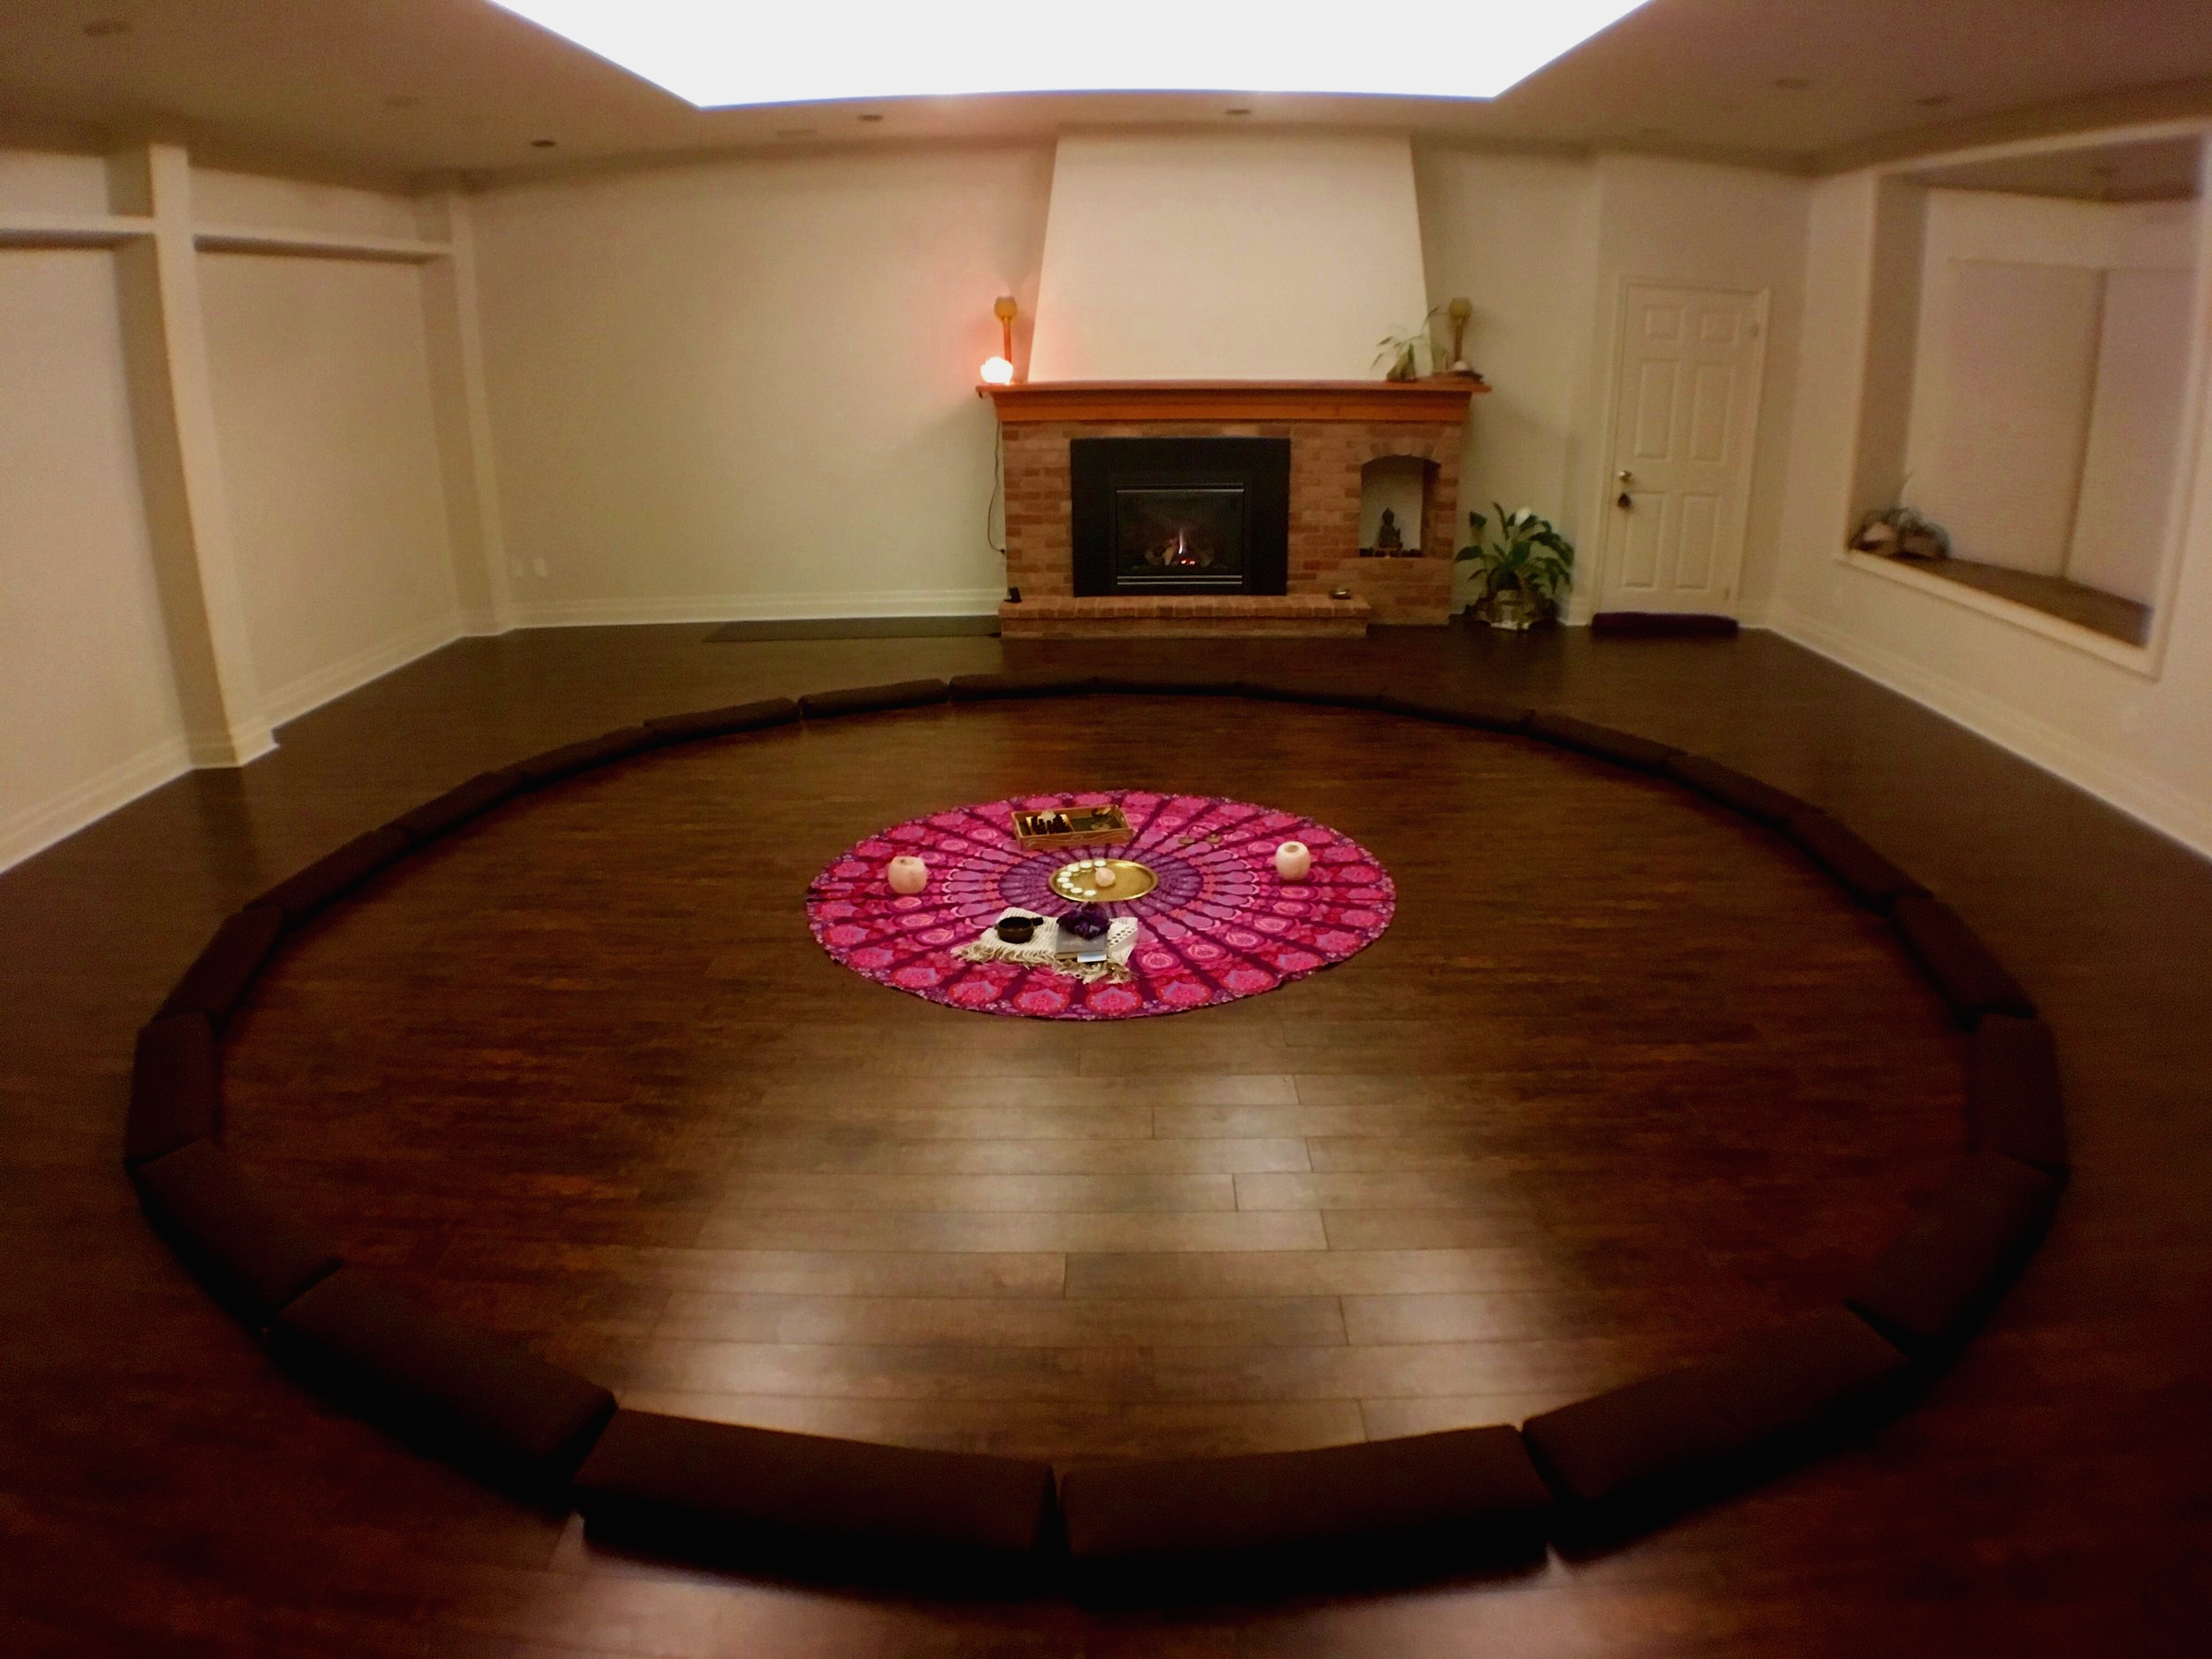 Preparing for OCTOBERS FULL MOON CIRCLE in our studio   over 20 people JOINING in circle THAT EVENING